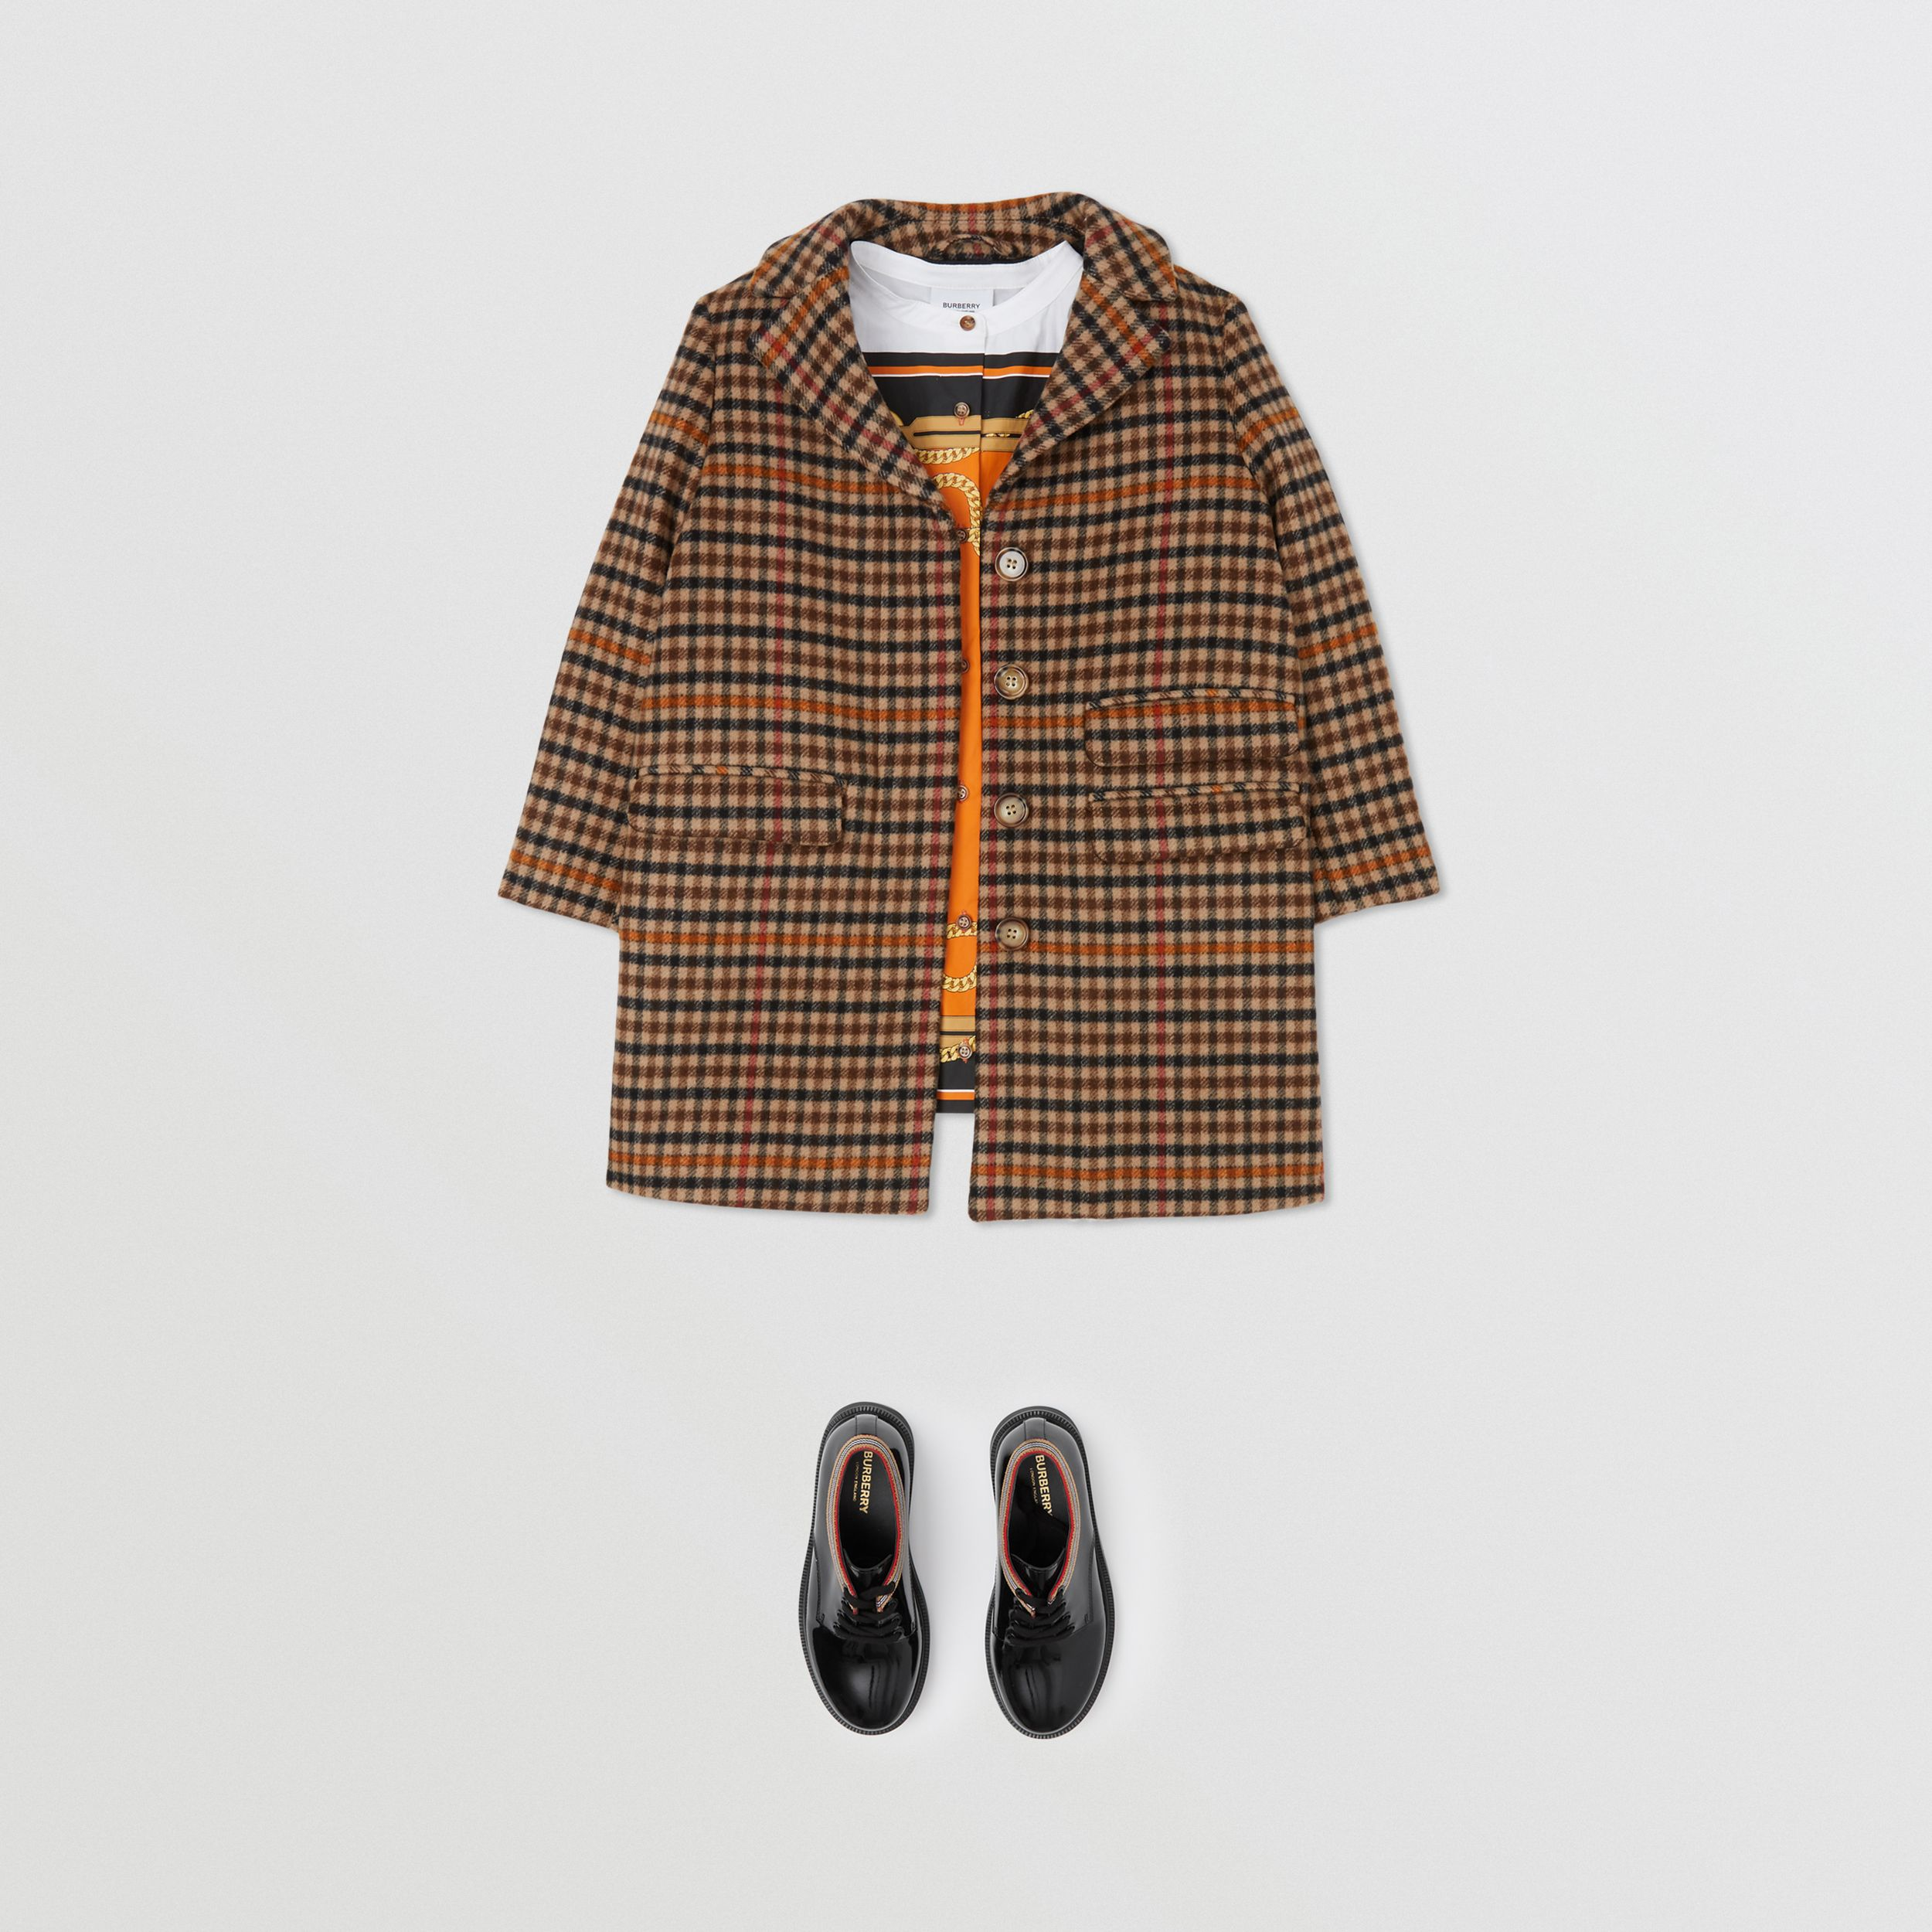 Embroidered Monogram Motif Check Wool Tailored Coat in Camel | Burberry - 2